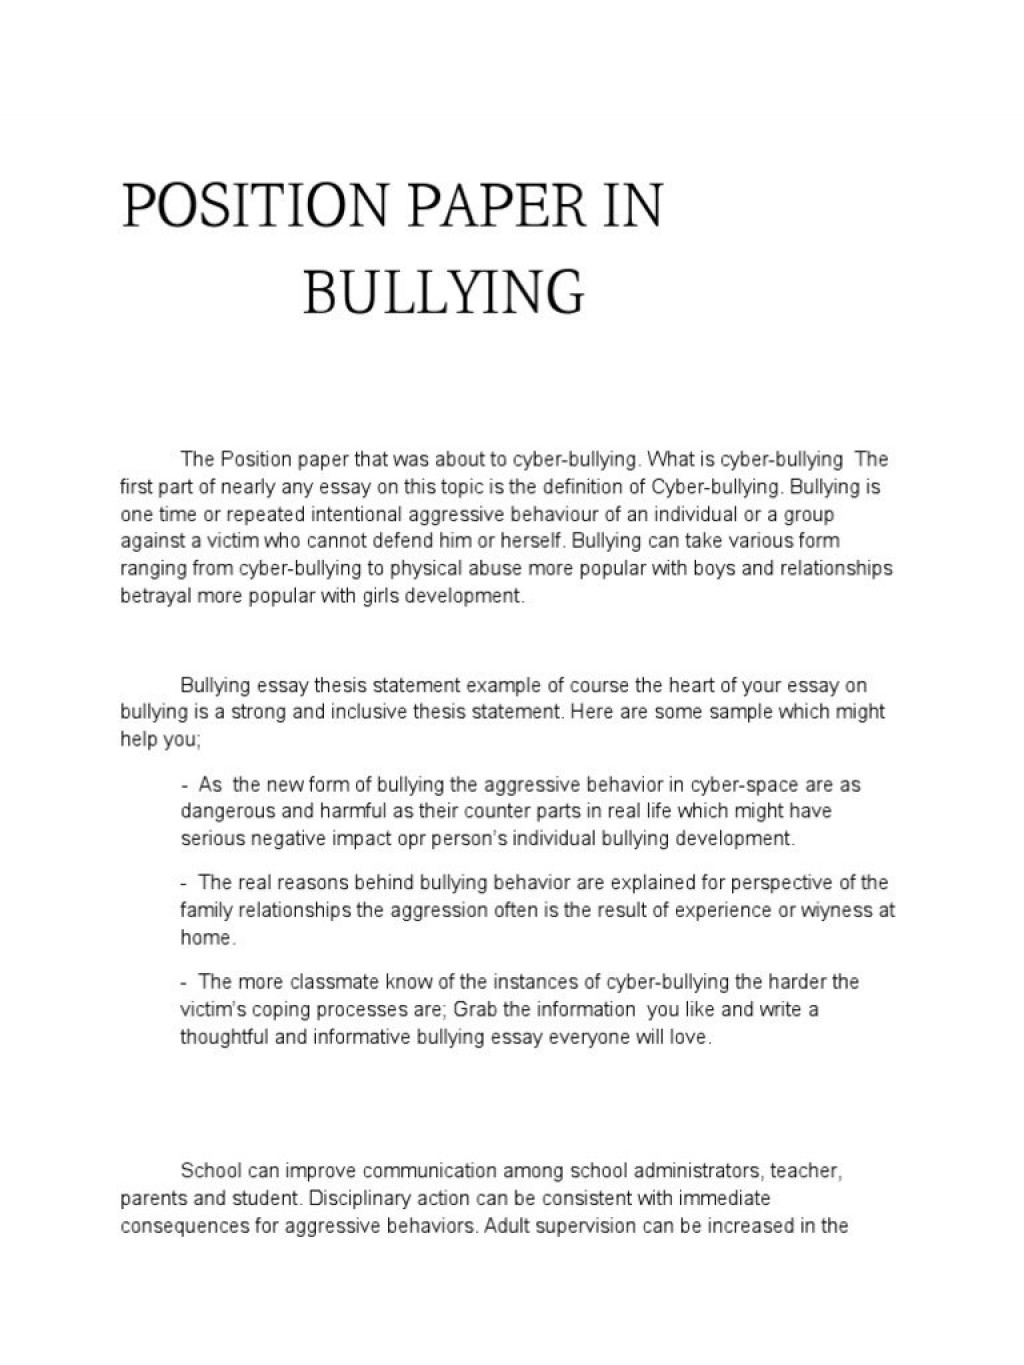 005 Bullying Essay Example Good Conclusion For Academic Writing Service Cause And Effect On In Awful Anti Cyber Argumentative Topics Thesis Large